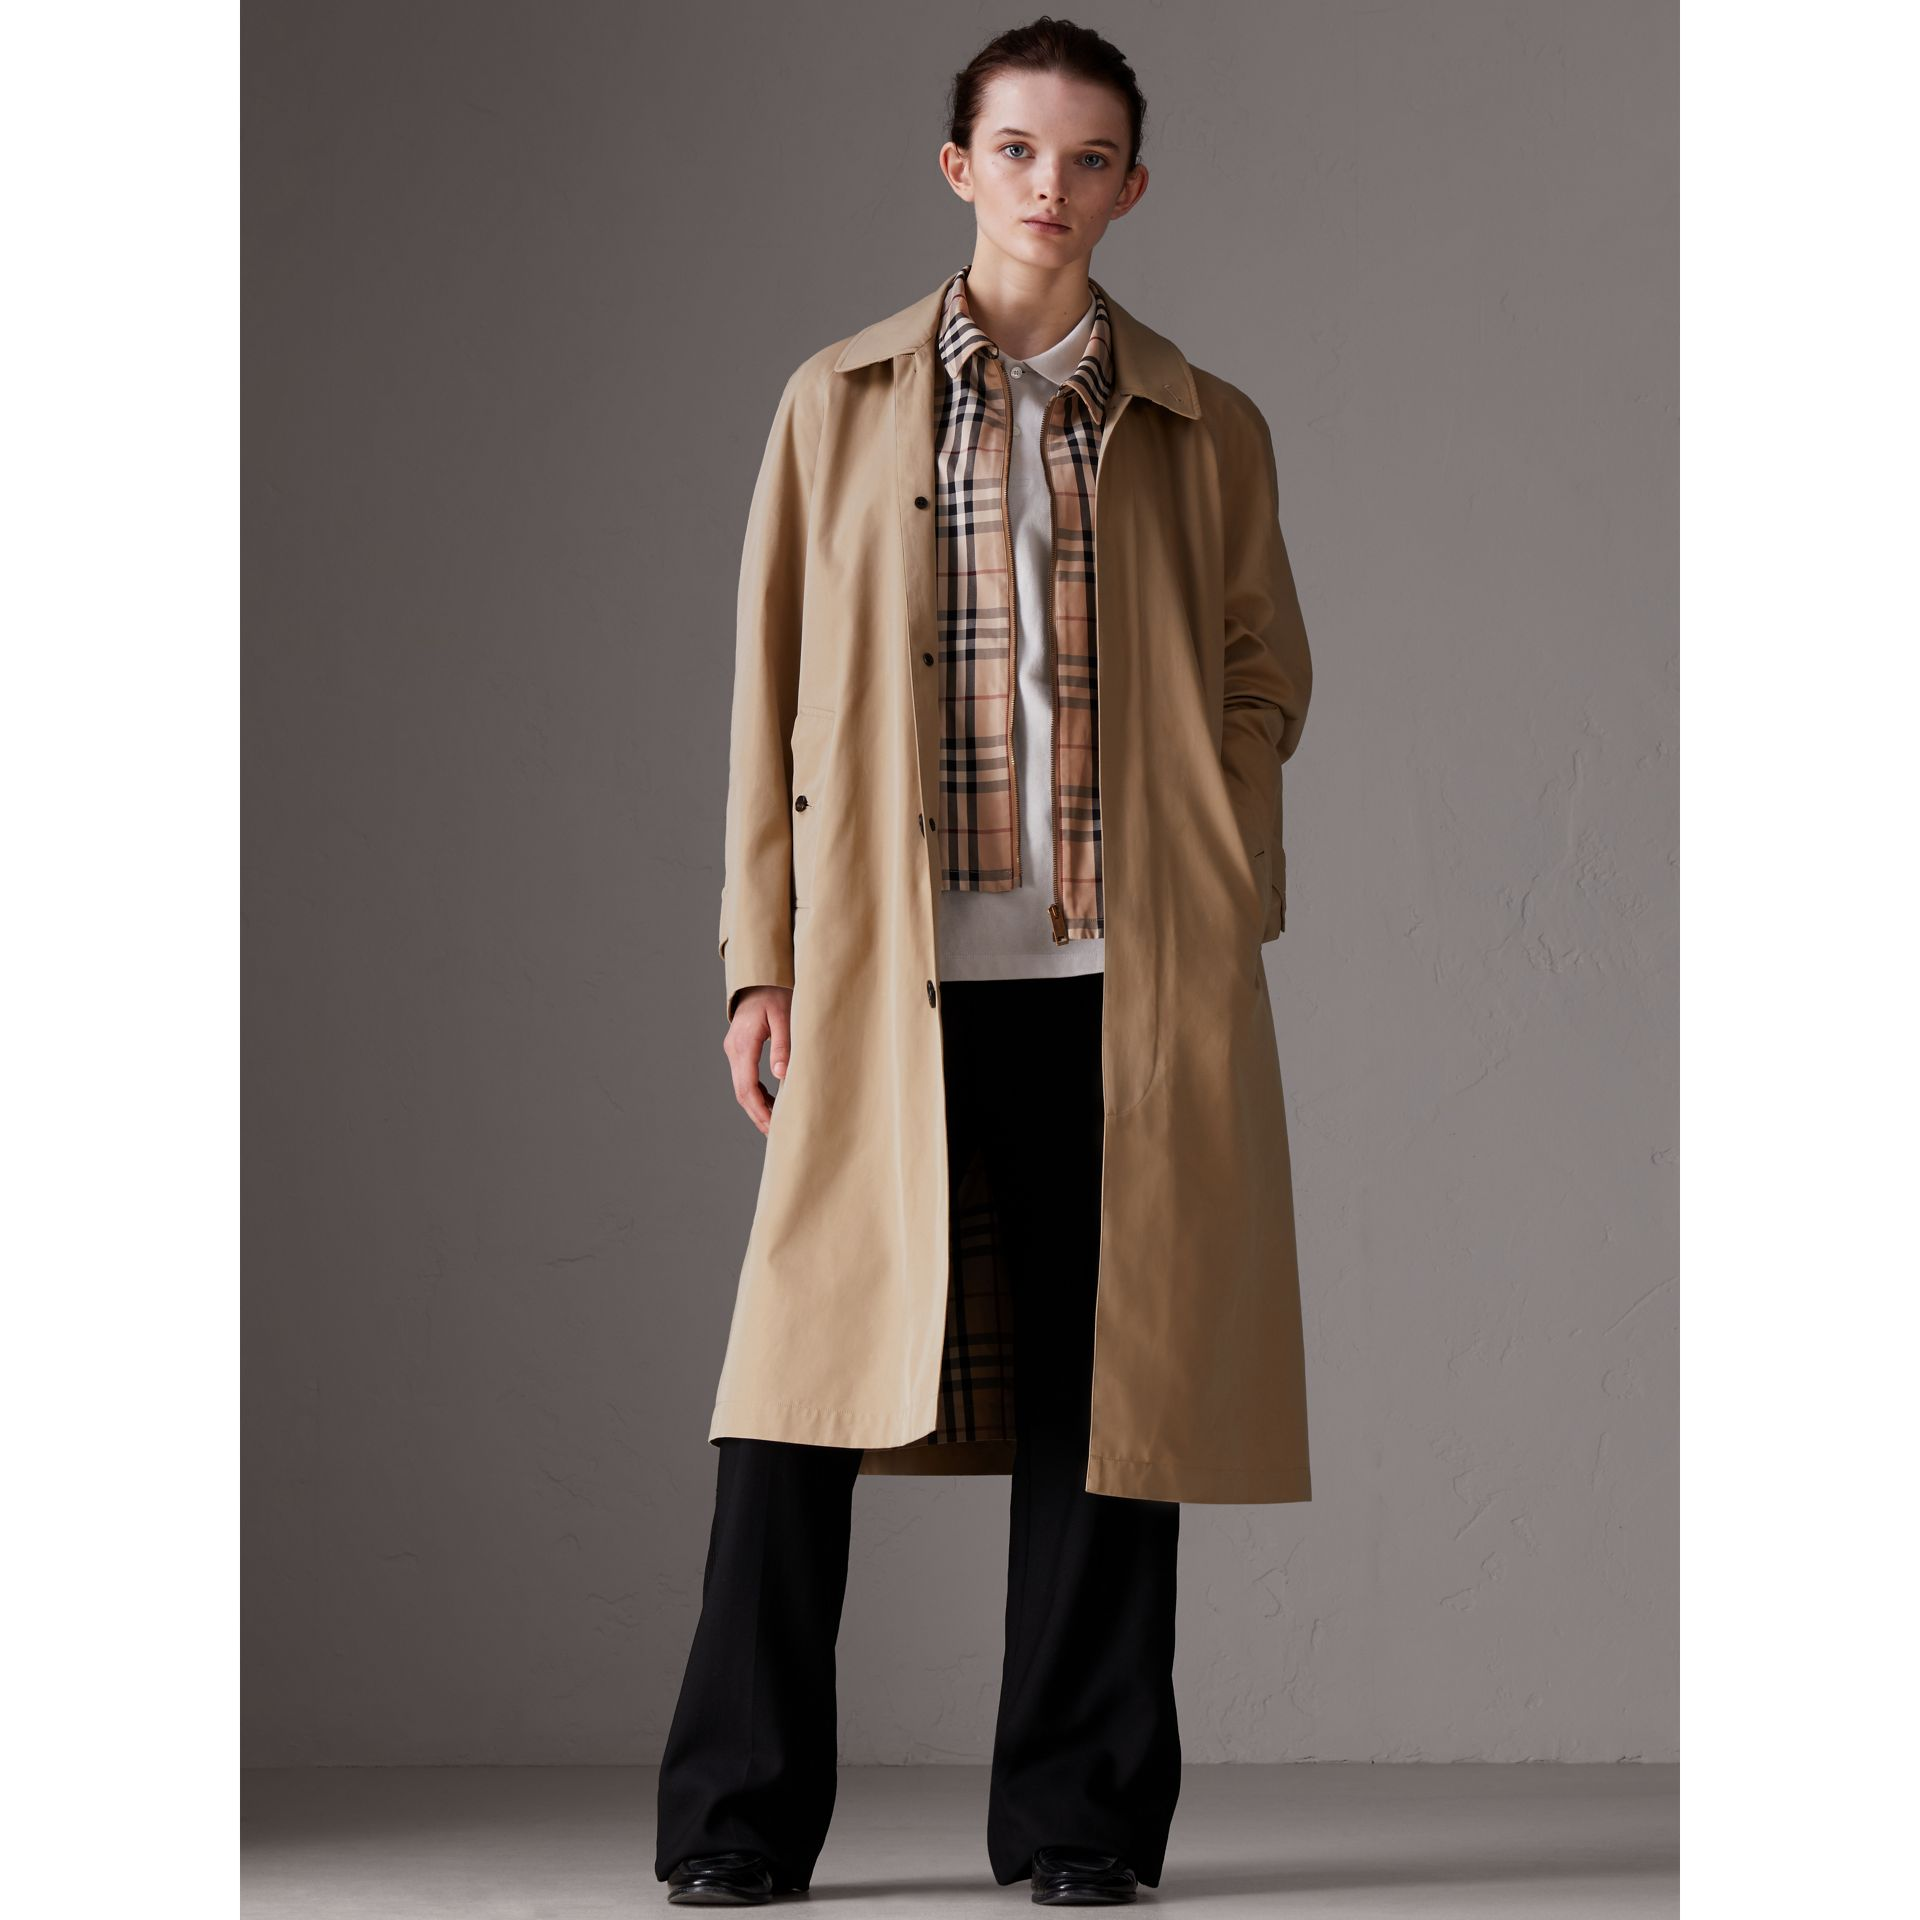 Gosha x Burberry Reconstructed Car Coat in Honey - Men | Burberry United States - gallery image 3